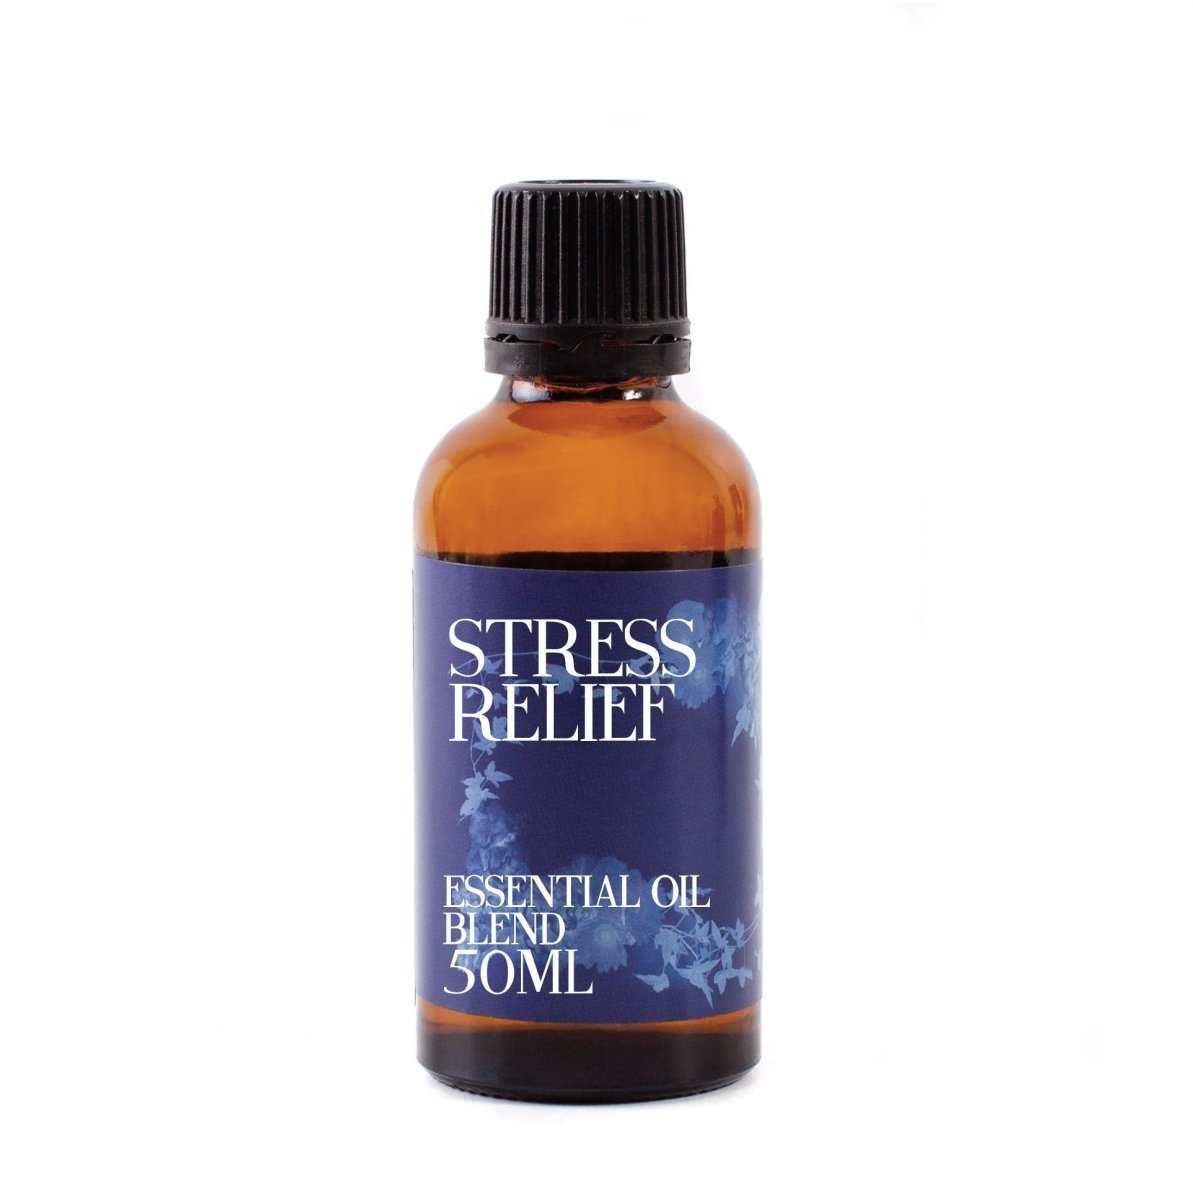 Stress Relief - Essential Oil Blends - Mystic Moments UK